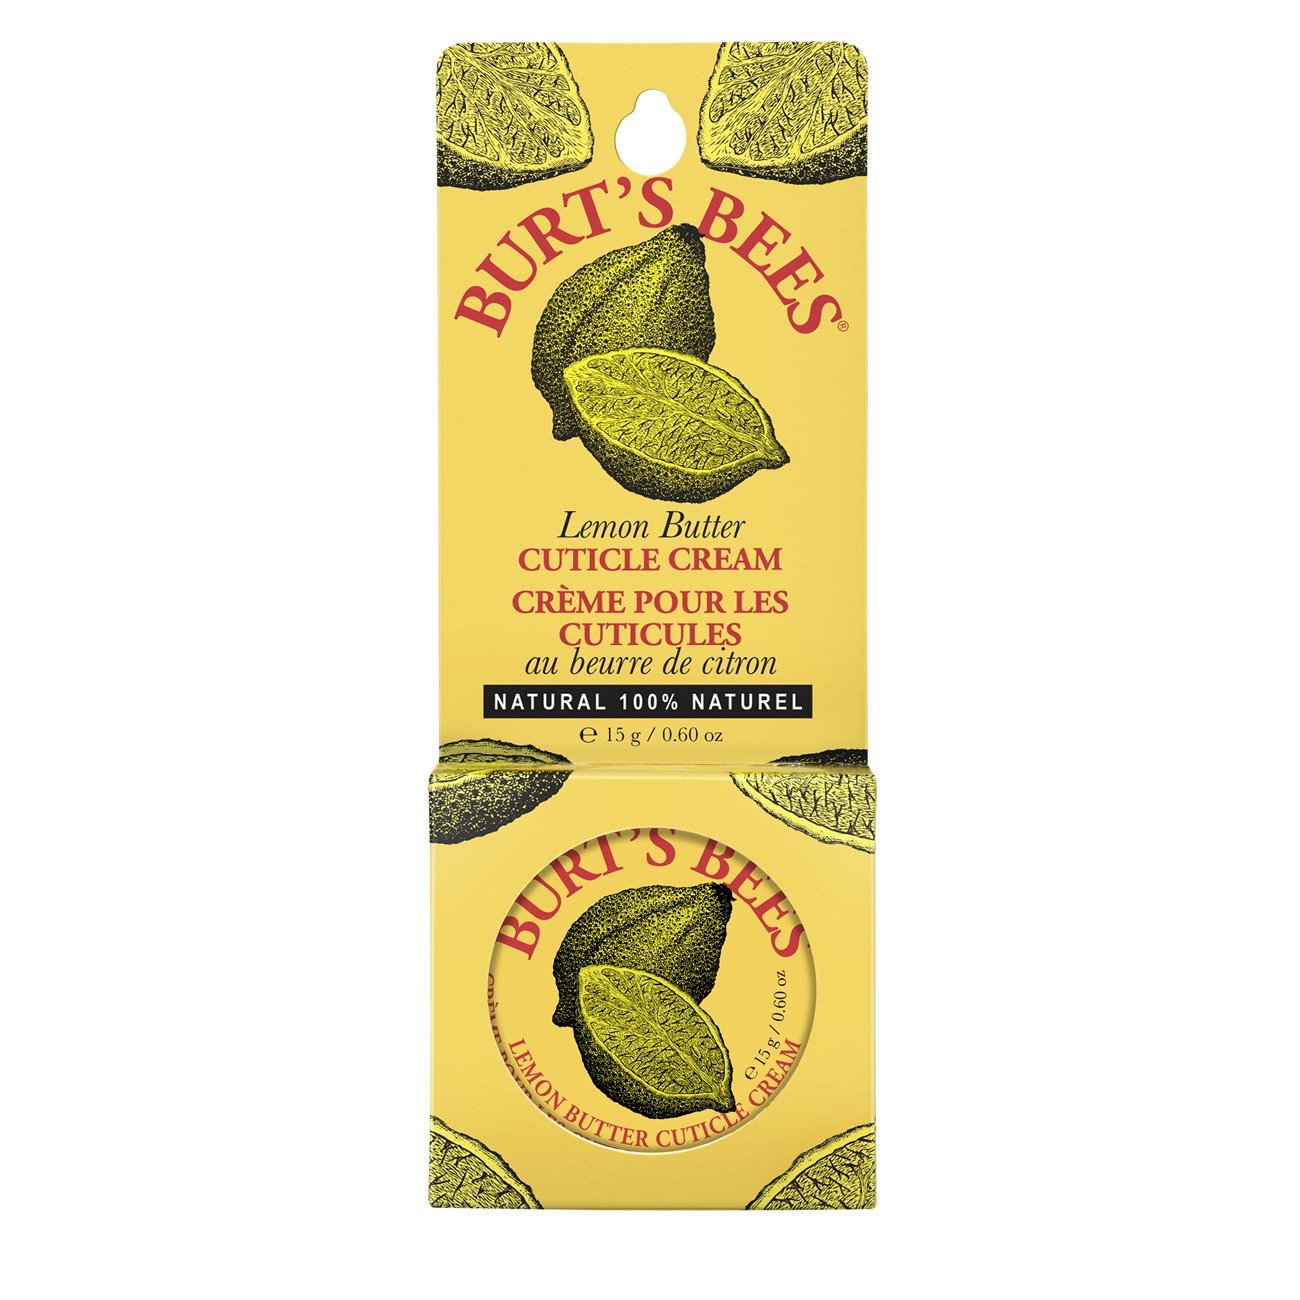 Burt's Bees 100% Natural Lemon Butter Cuticle Cream​